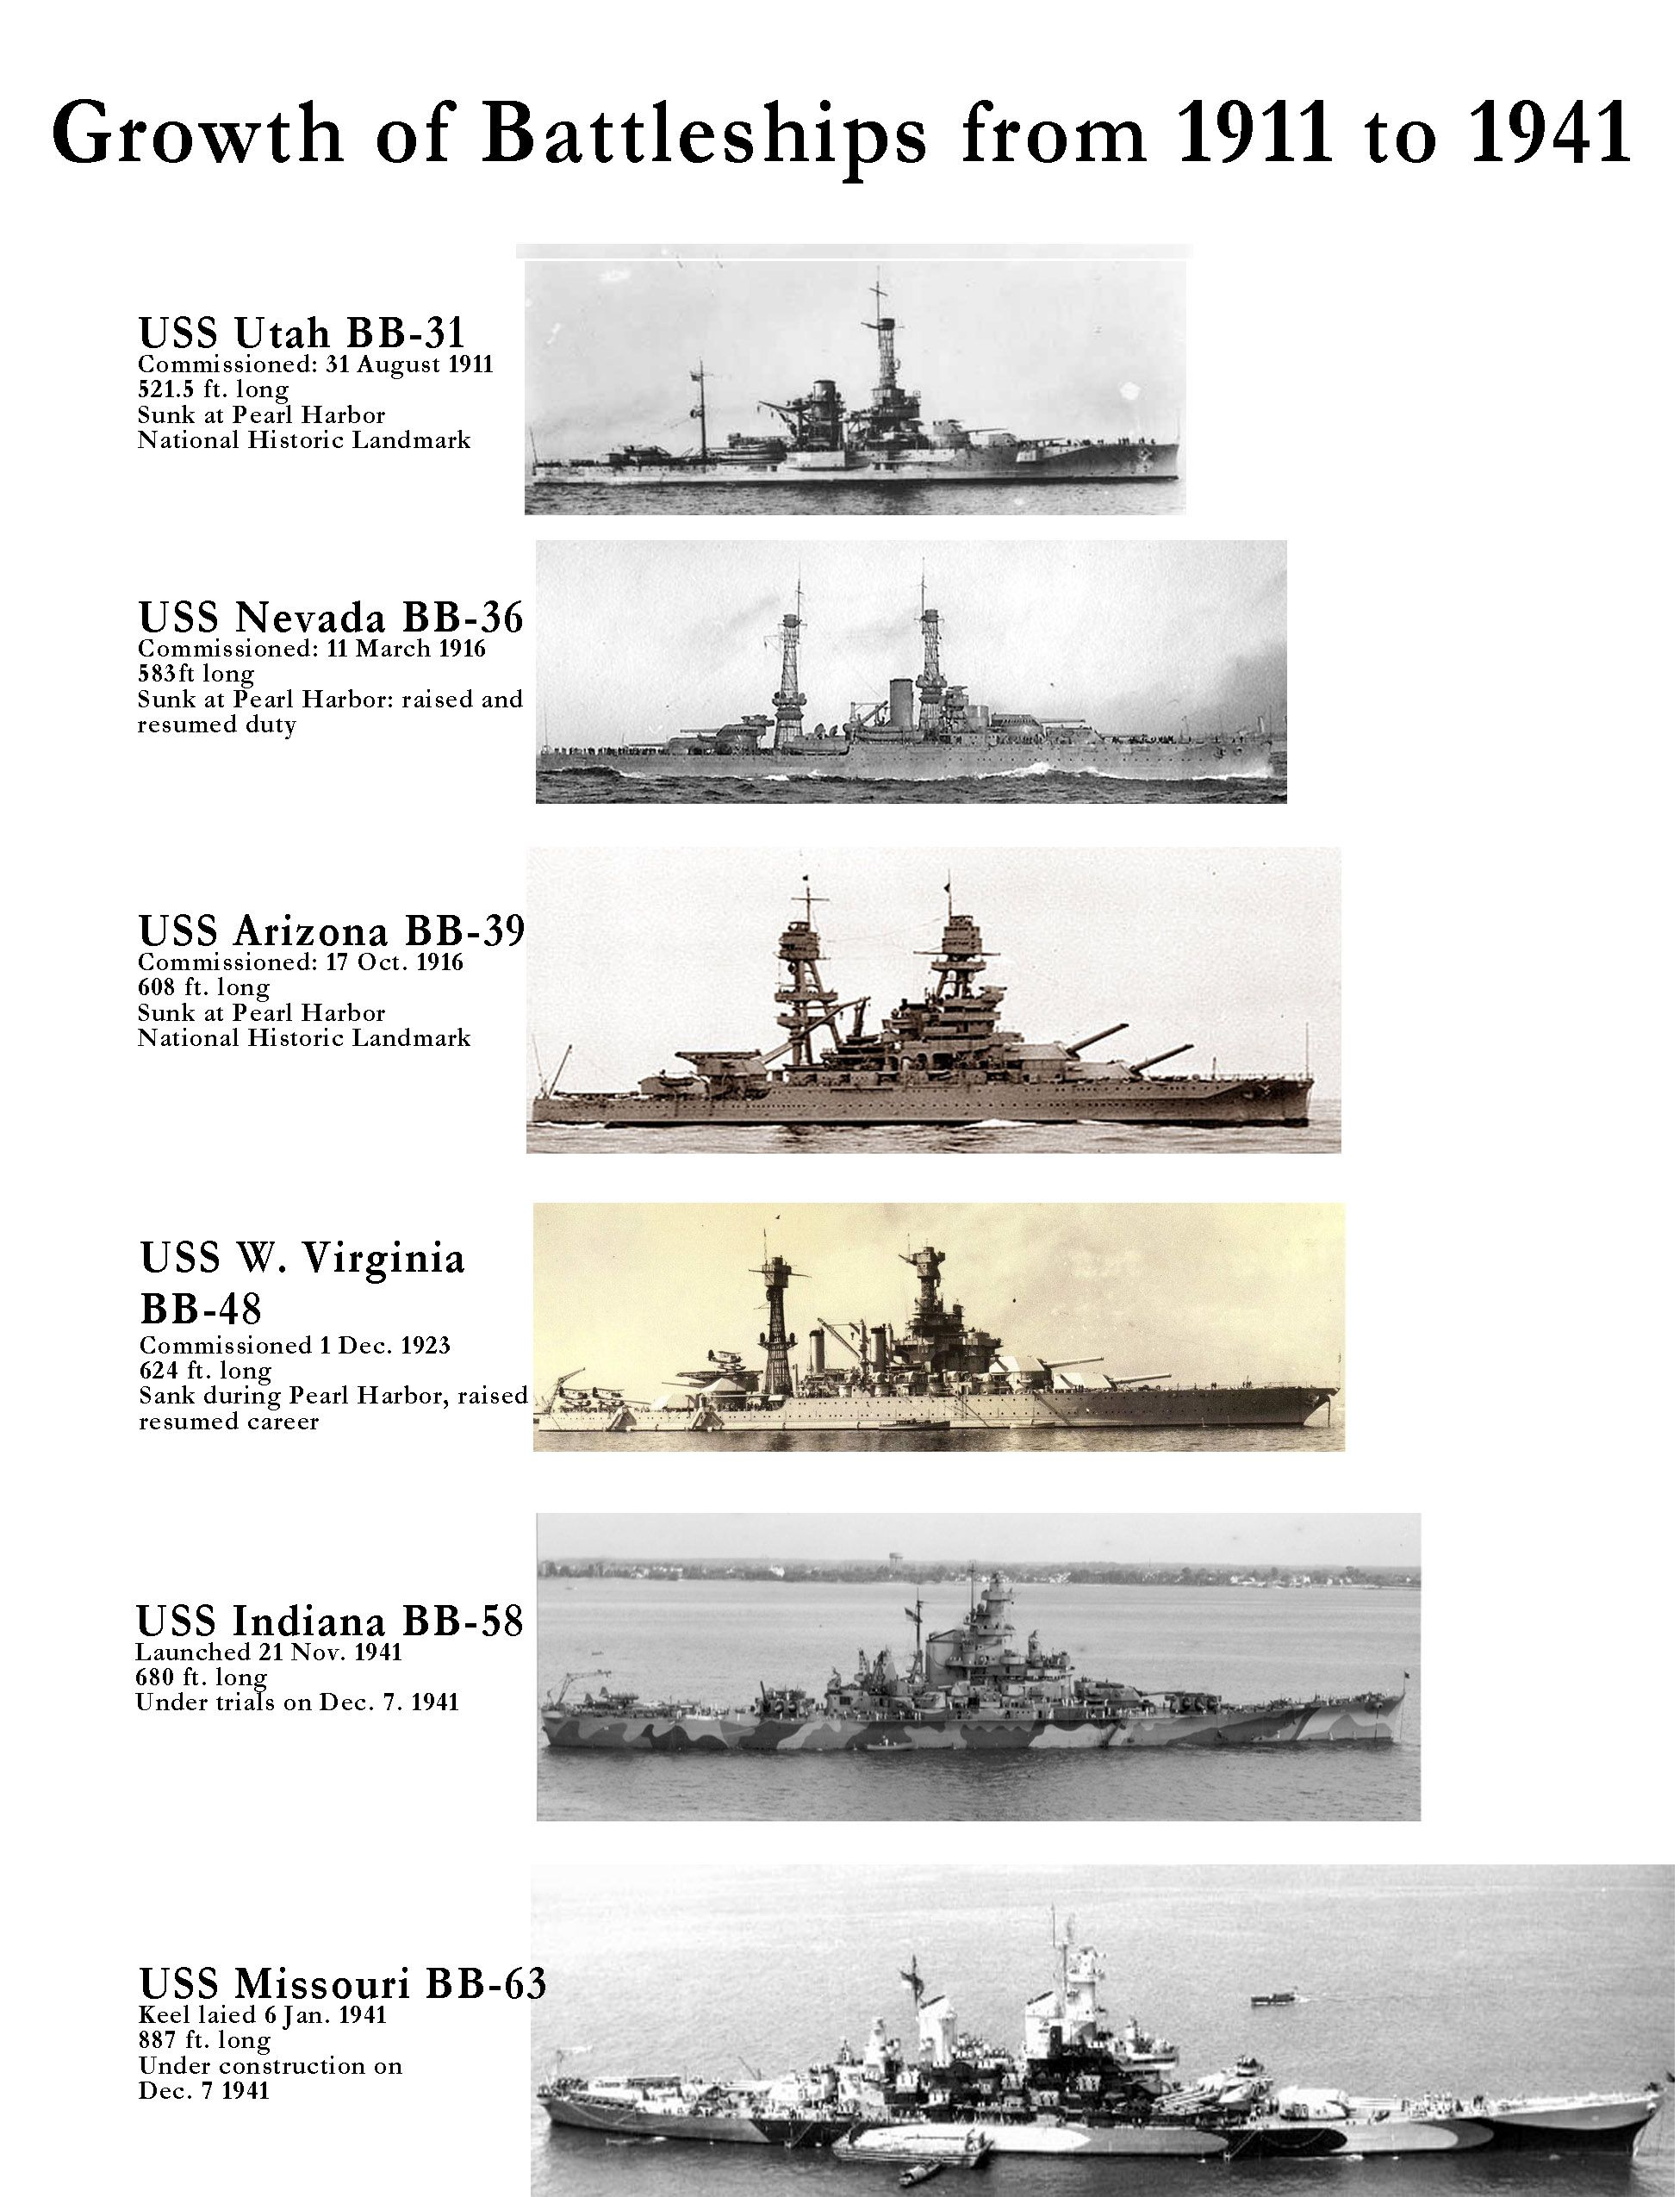 growth of us battleships from 1911 to 1944, naval history, military  history, uss